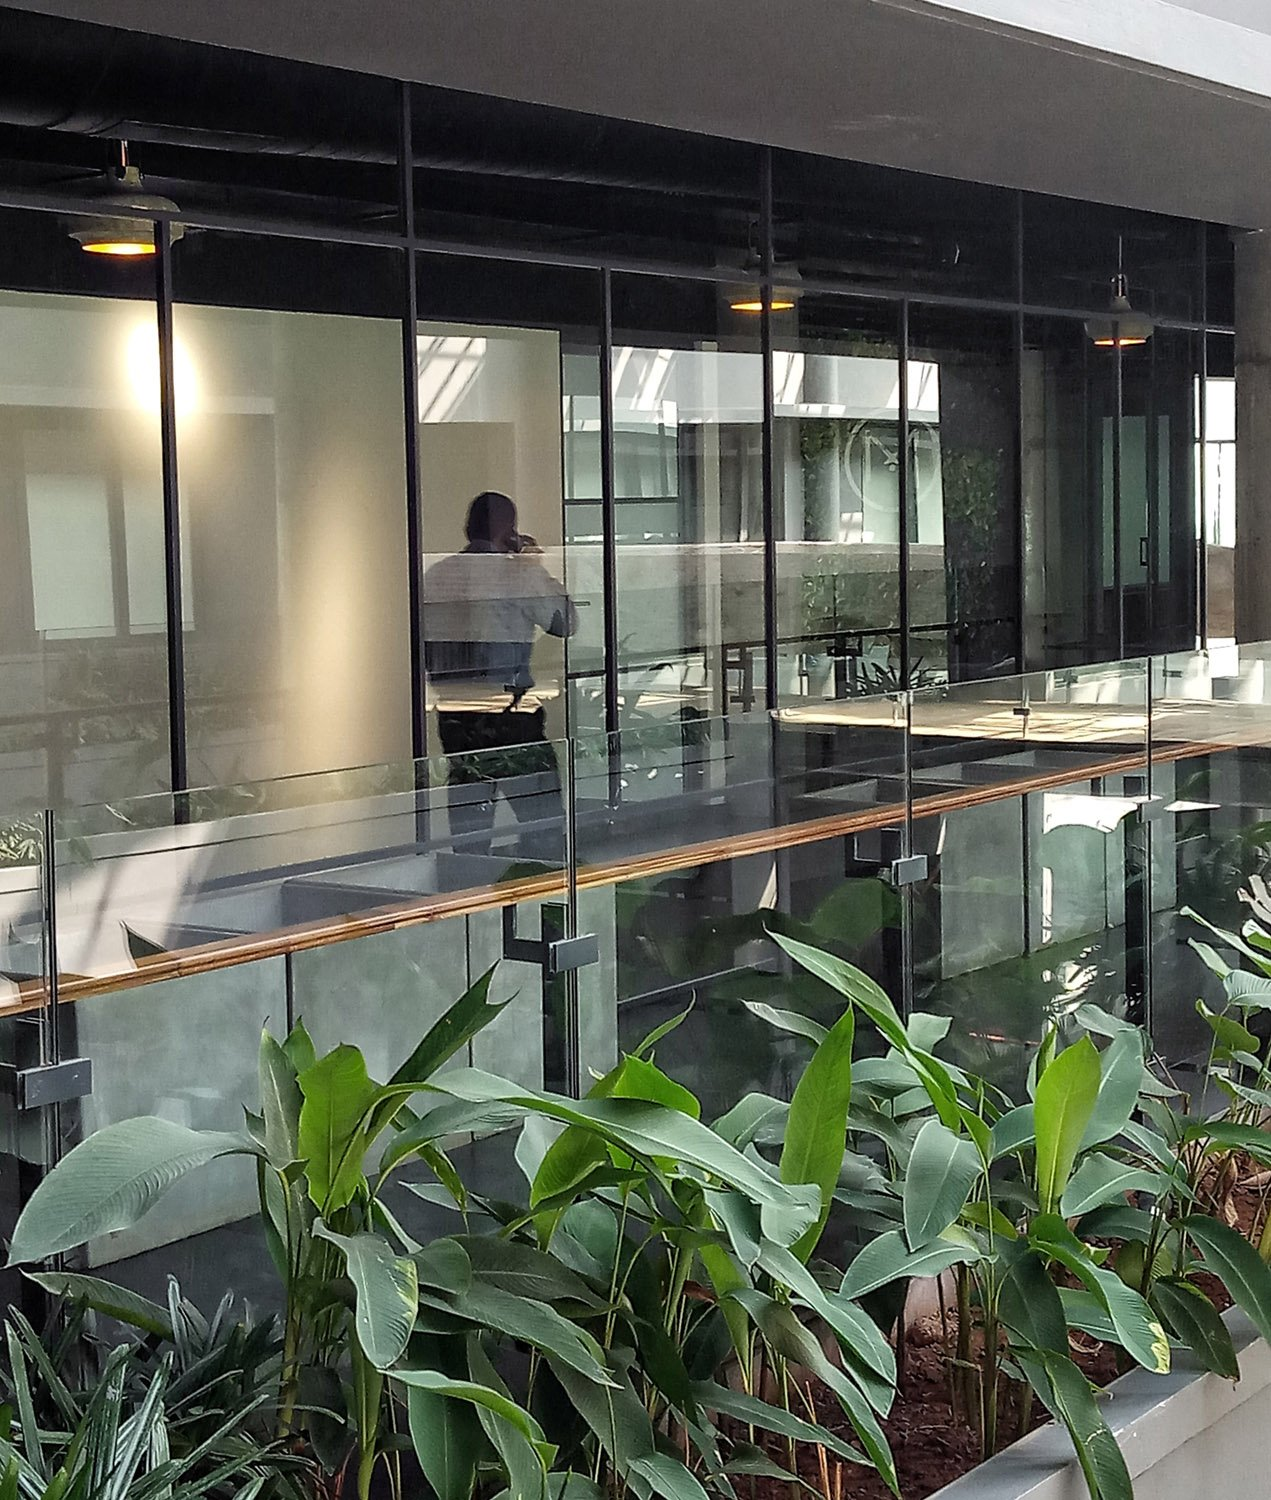 Interior spaces bring in the exteriors - View of 4th floor office space Ar. Sujith. G.S